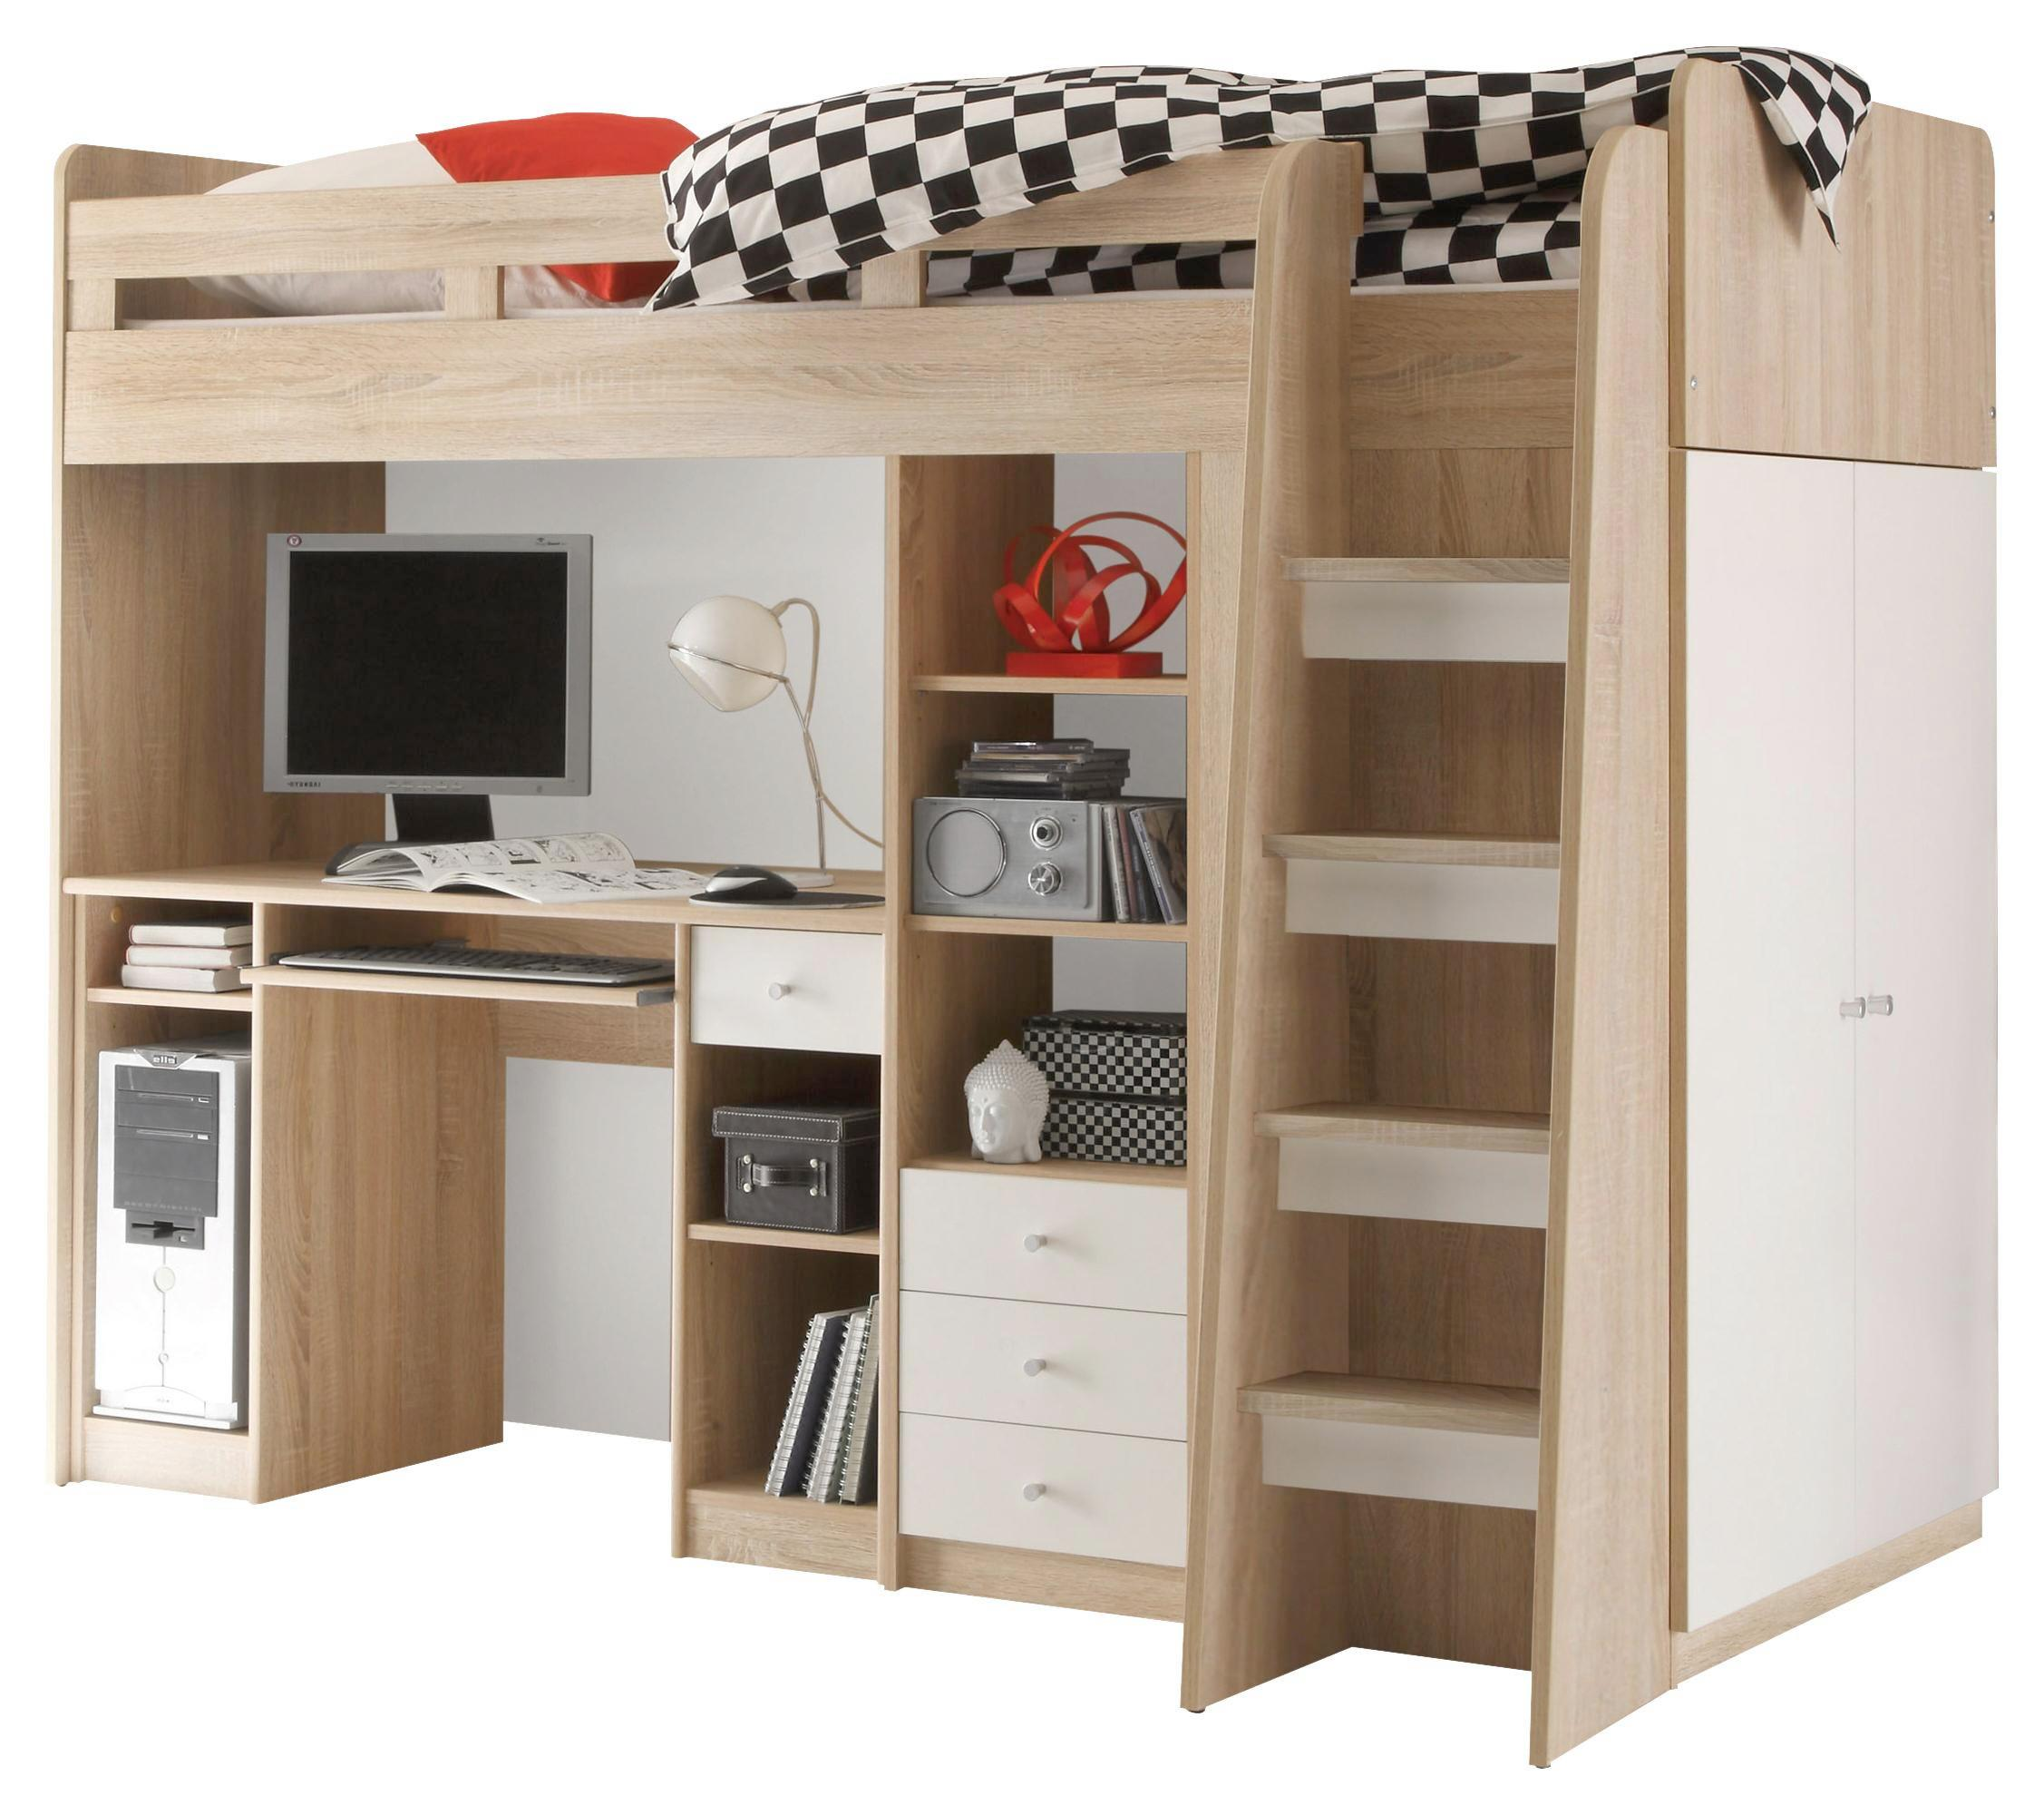 hohe betten fabulous hochbett baumhaus inkl lattenrost spielbett massivholz wei xcm uvp euro. Black Bedroom Furniture Sets. Home Design Ideas